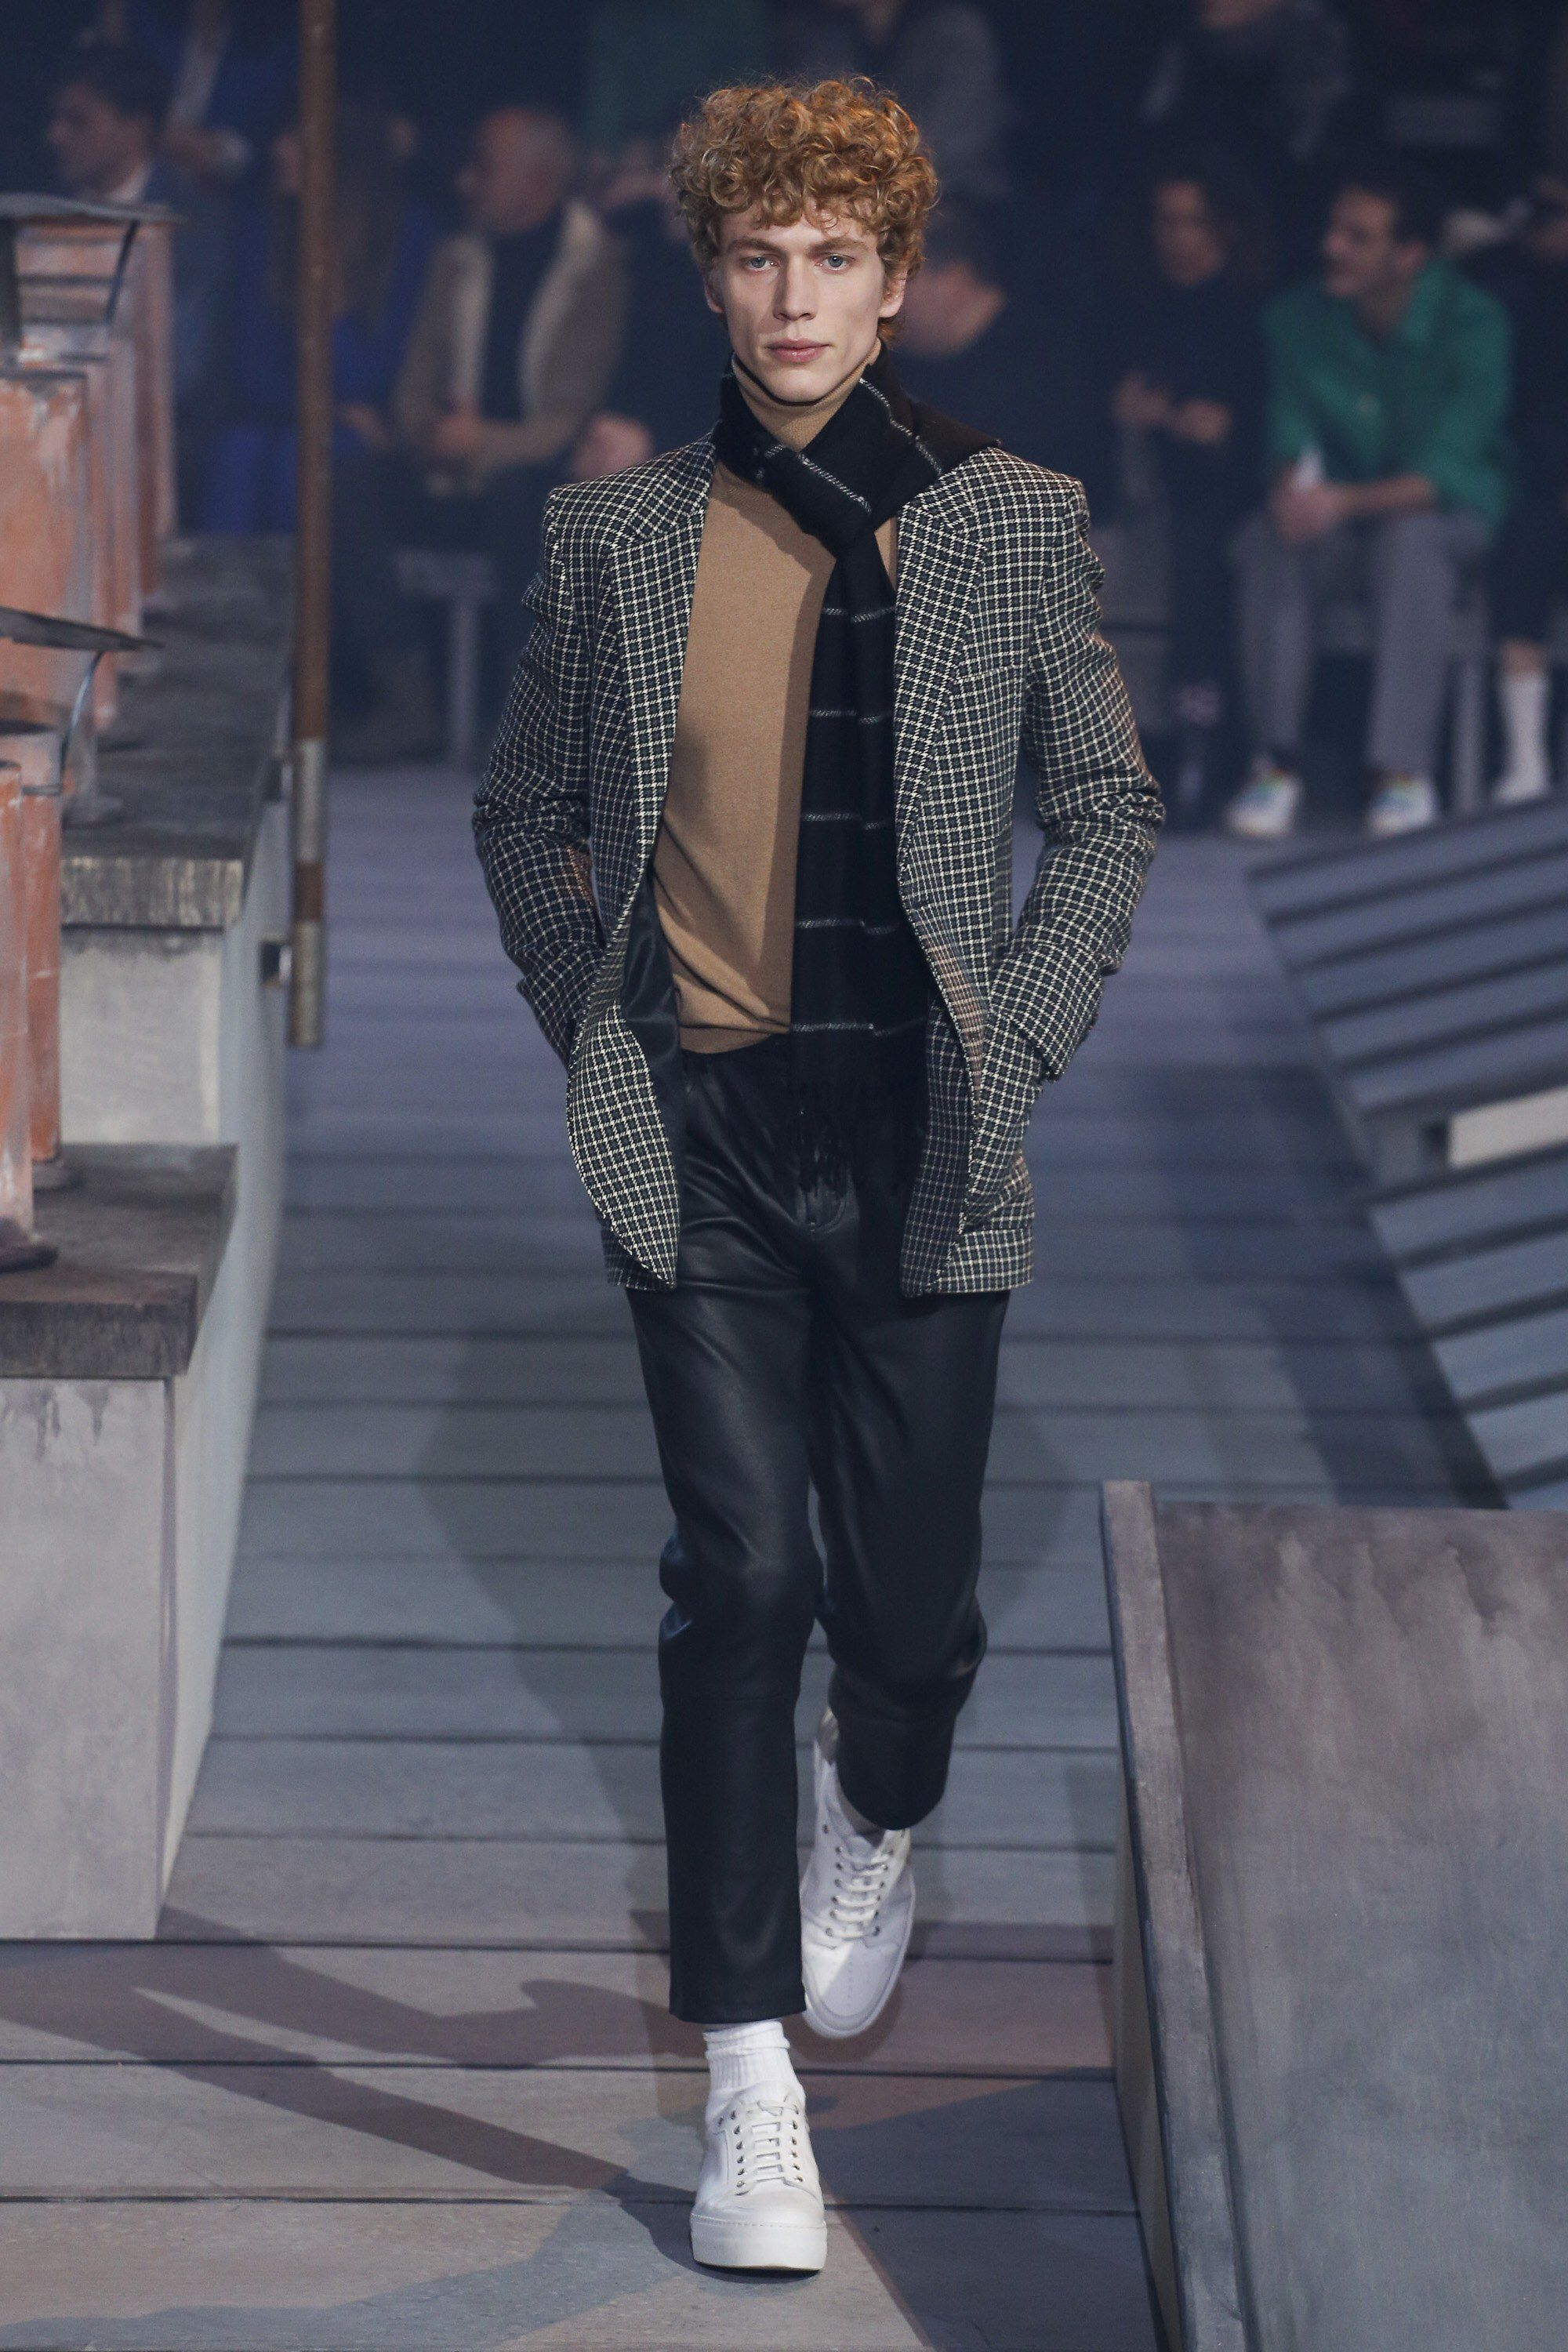 Ami fall menswear fashion show collection fresh from runway